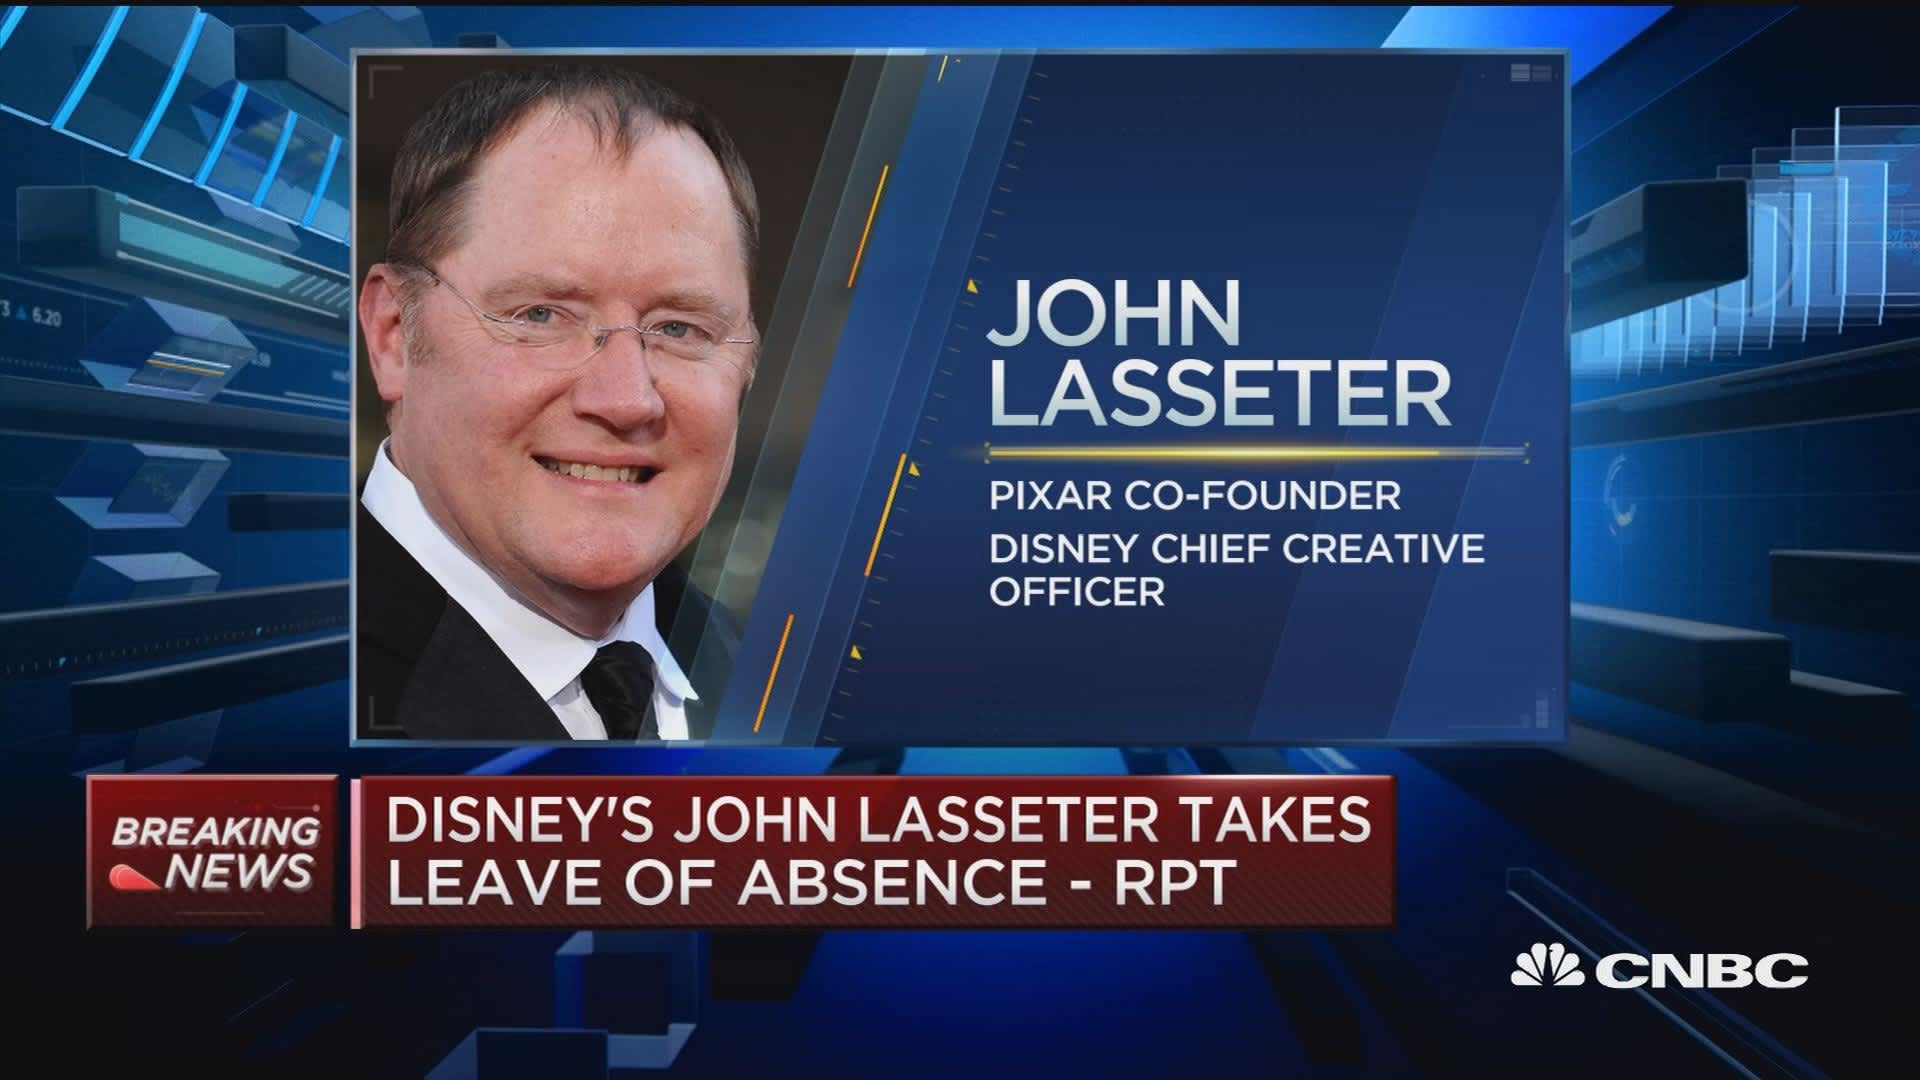 John Lasseter takes leave of absence from Pixar: Hollywood Reporter